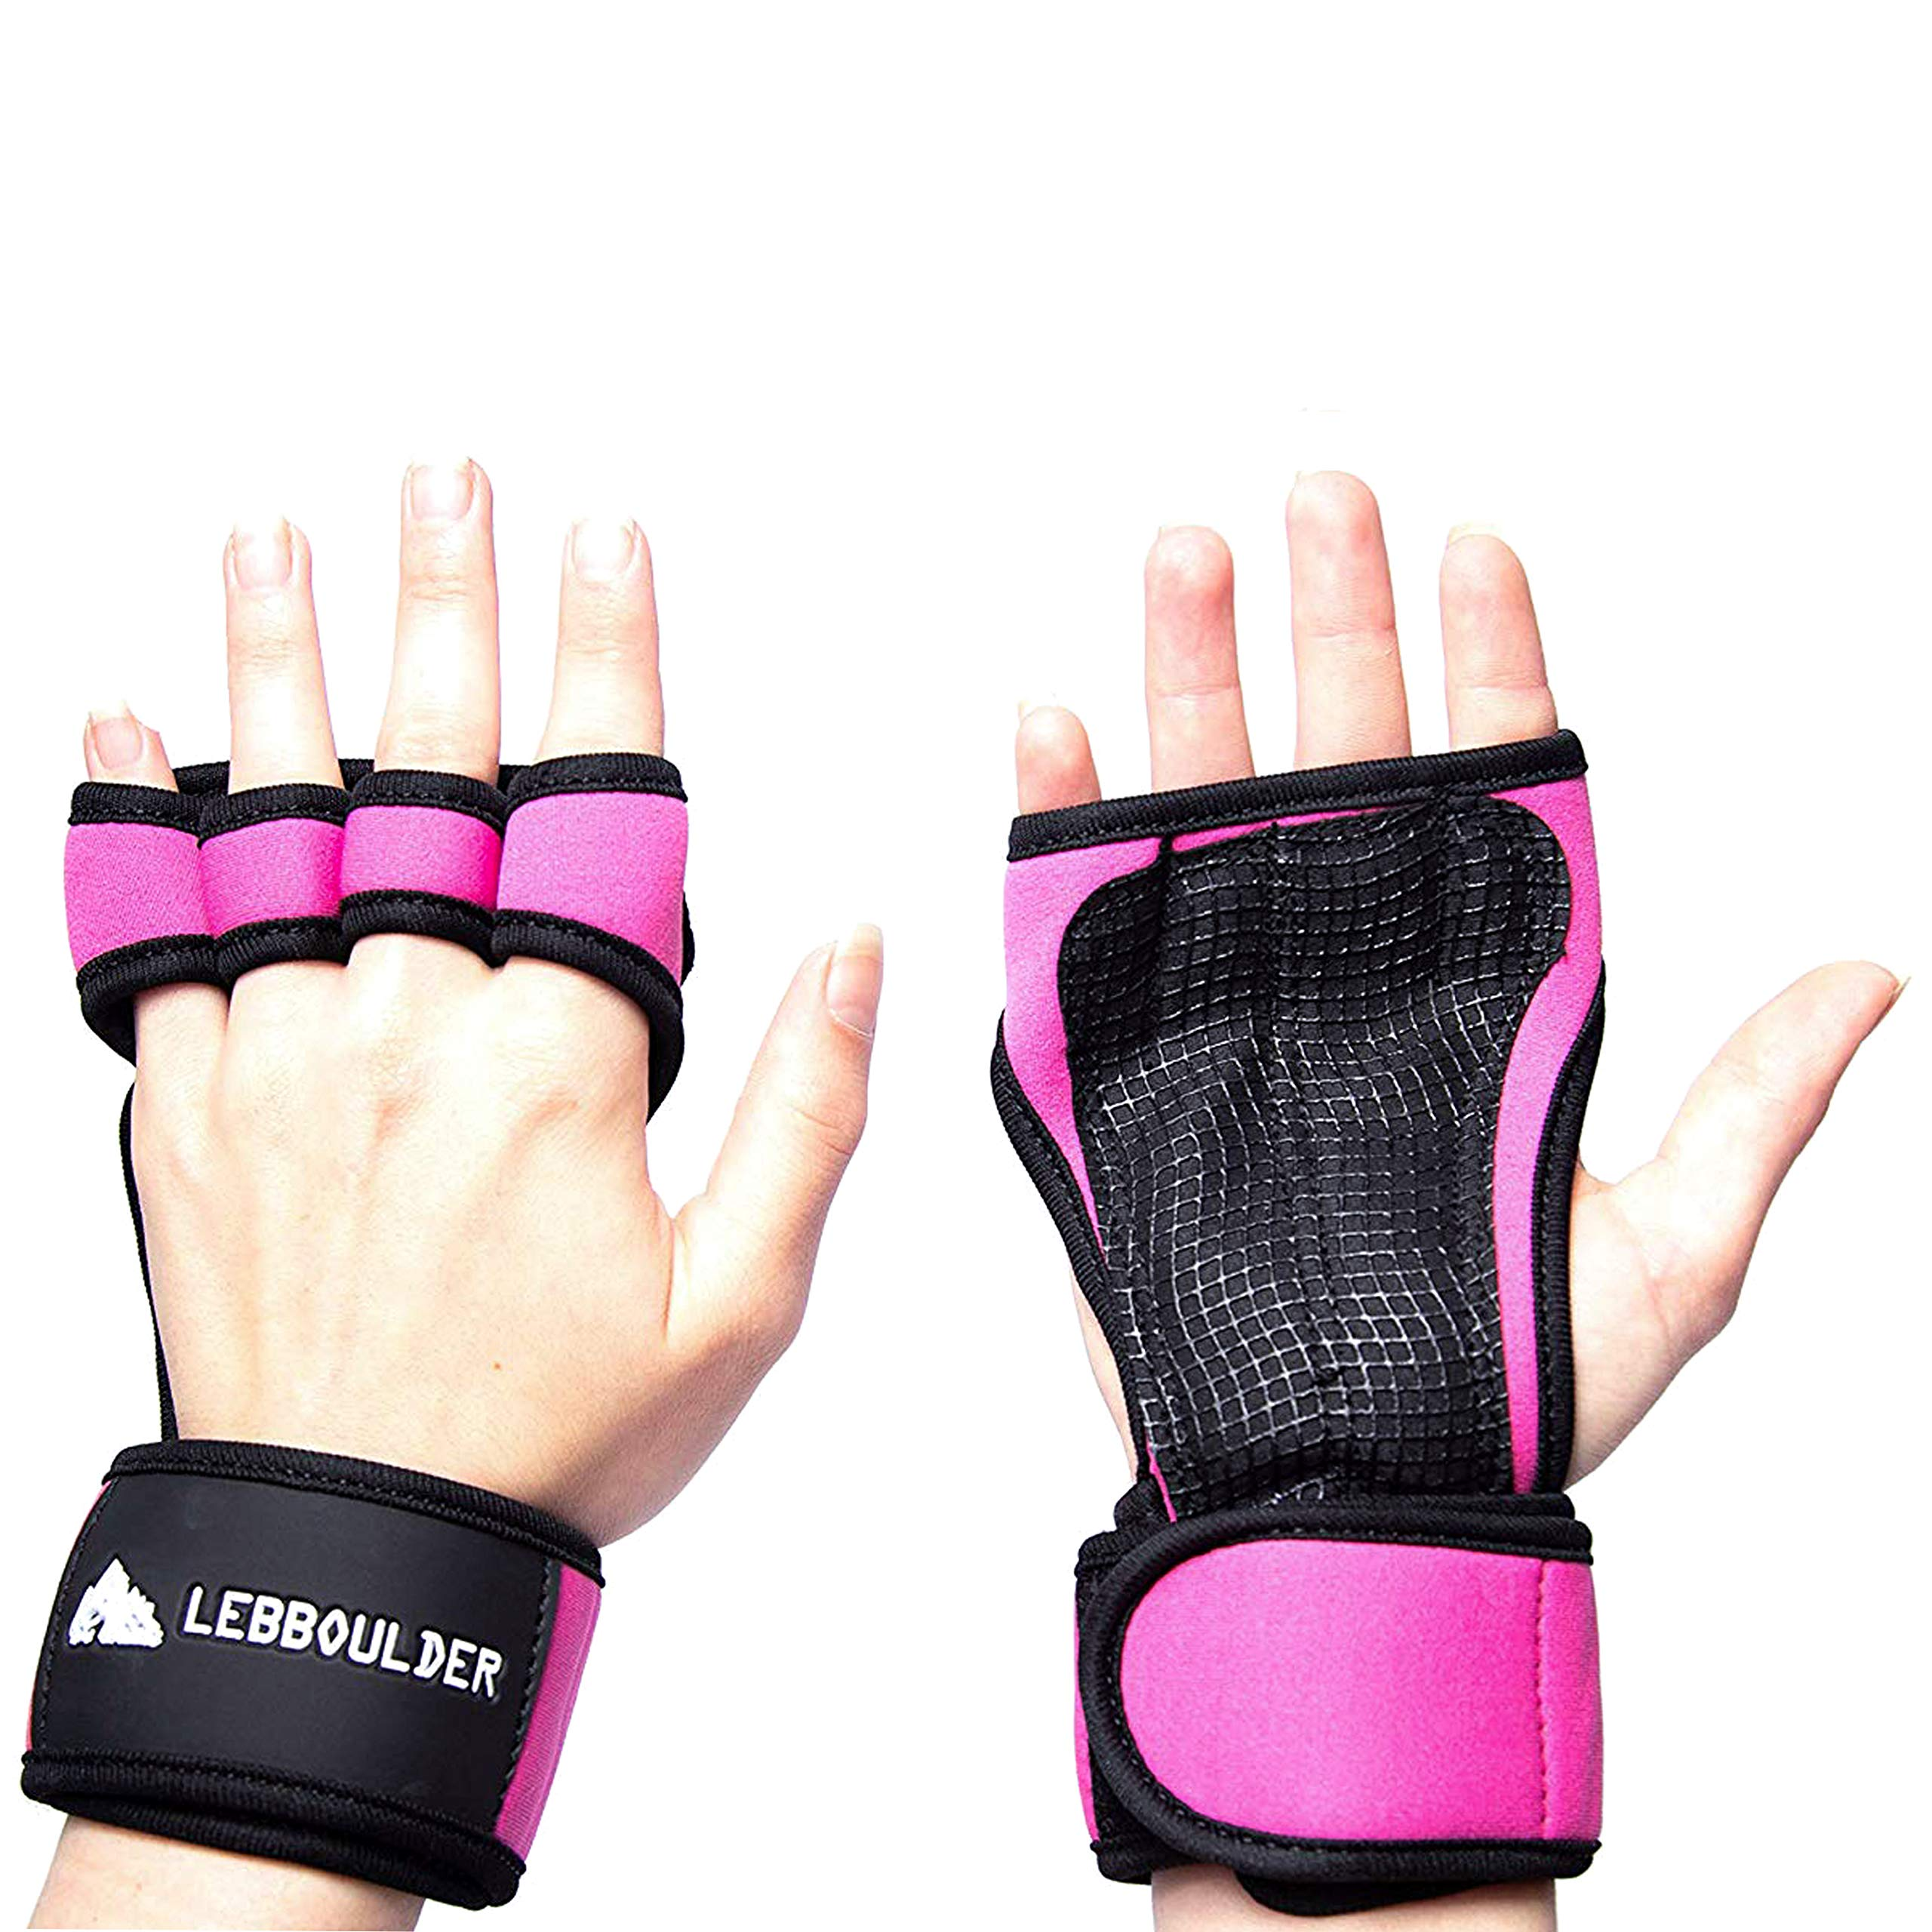 Silicone Padding To Avoid Calluses Wod Suits Both Men /& Women Weight Lifting Gloves With Wrist Support For Fitness Strong Grip Gym Cross Training /& Powerlifting LEBBOULDER Workout Gloves